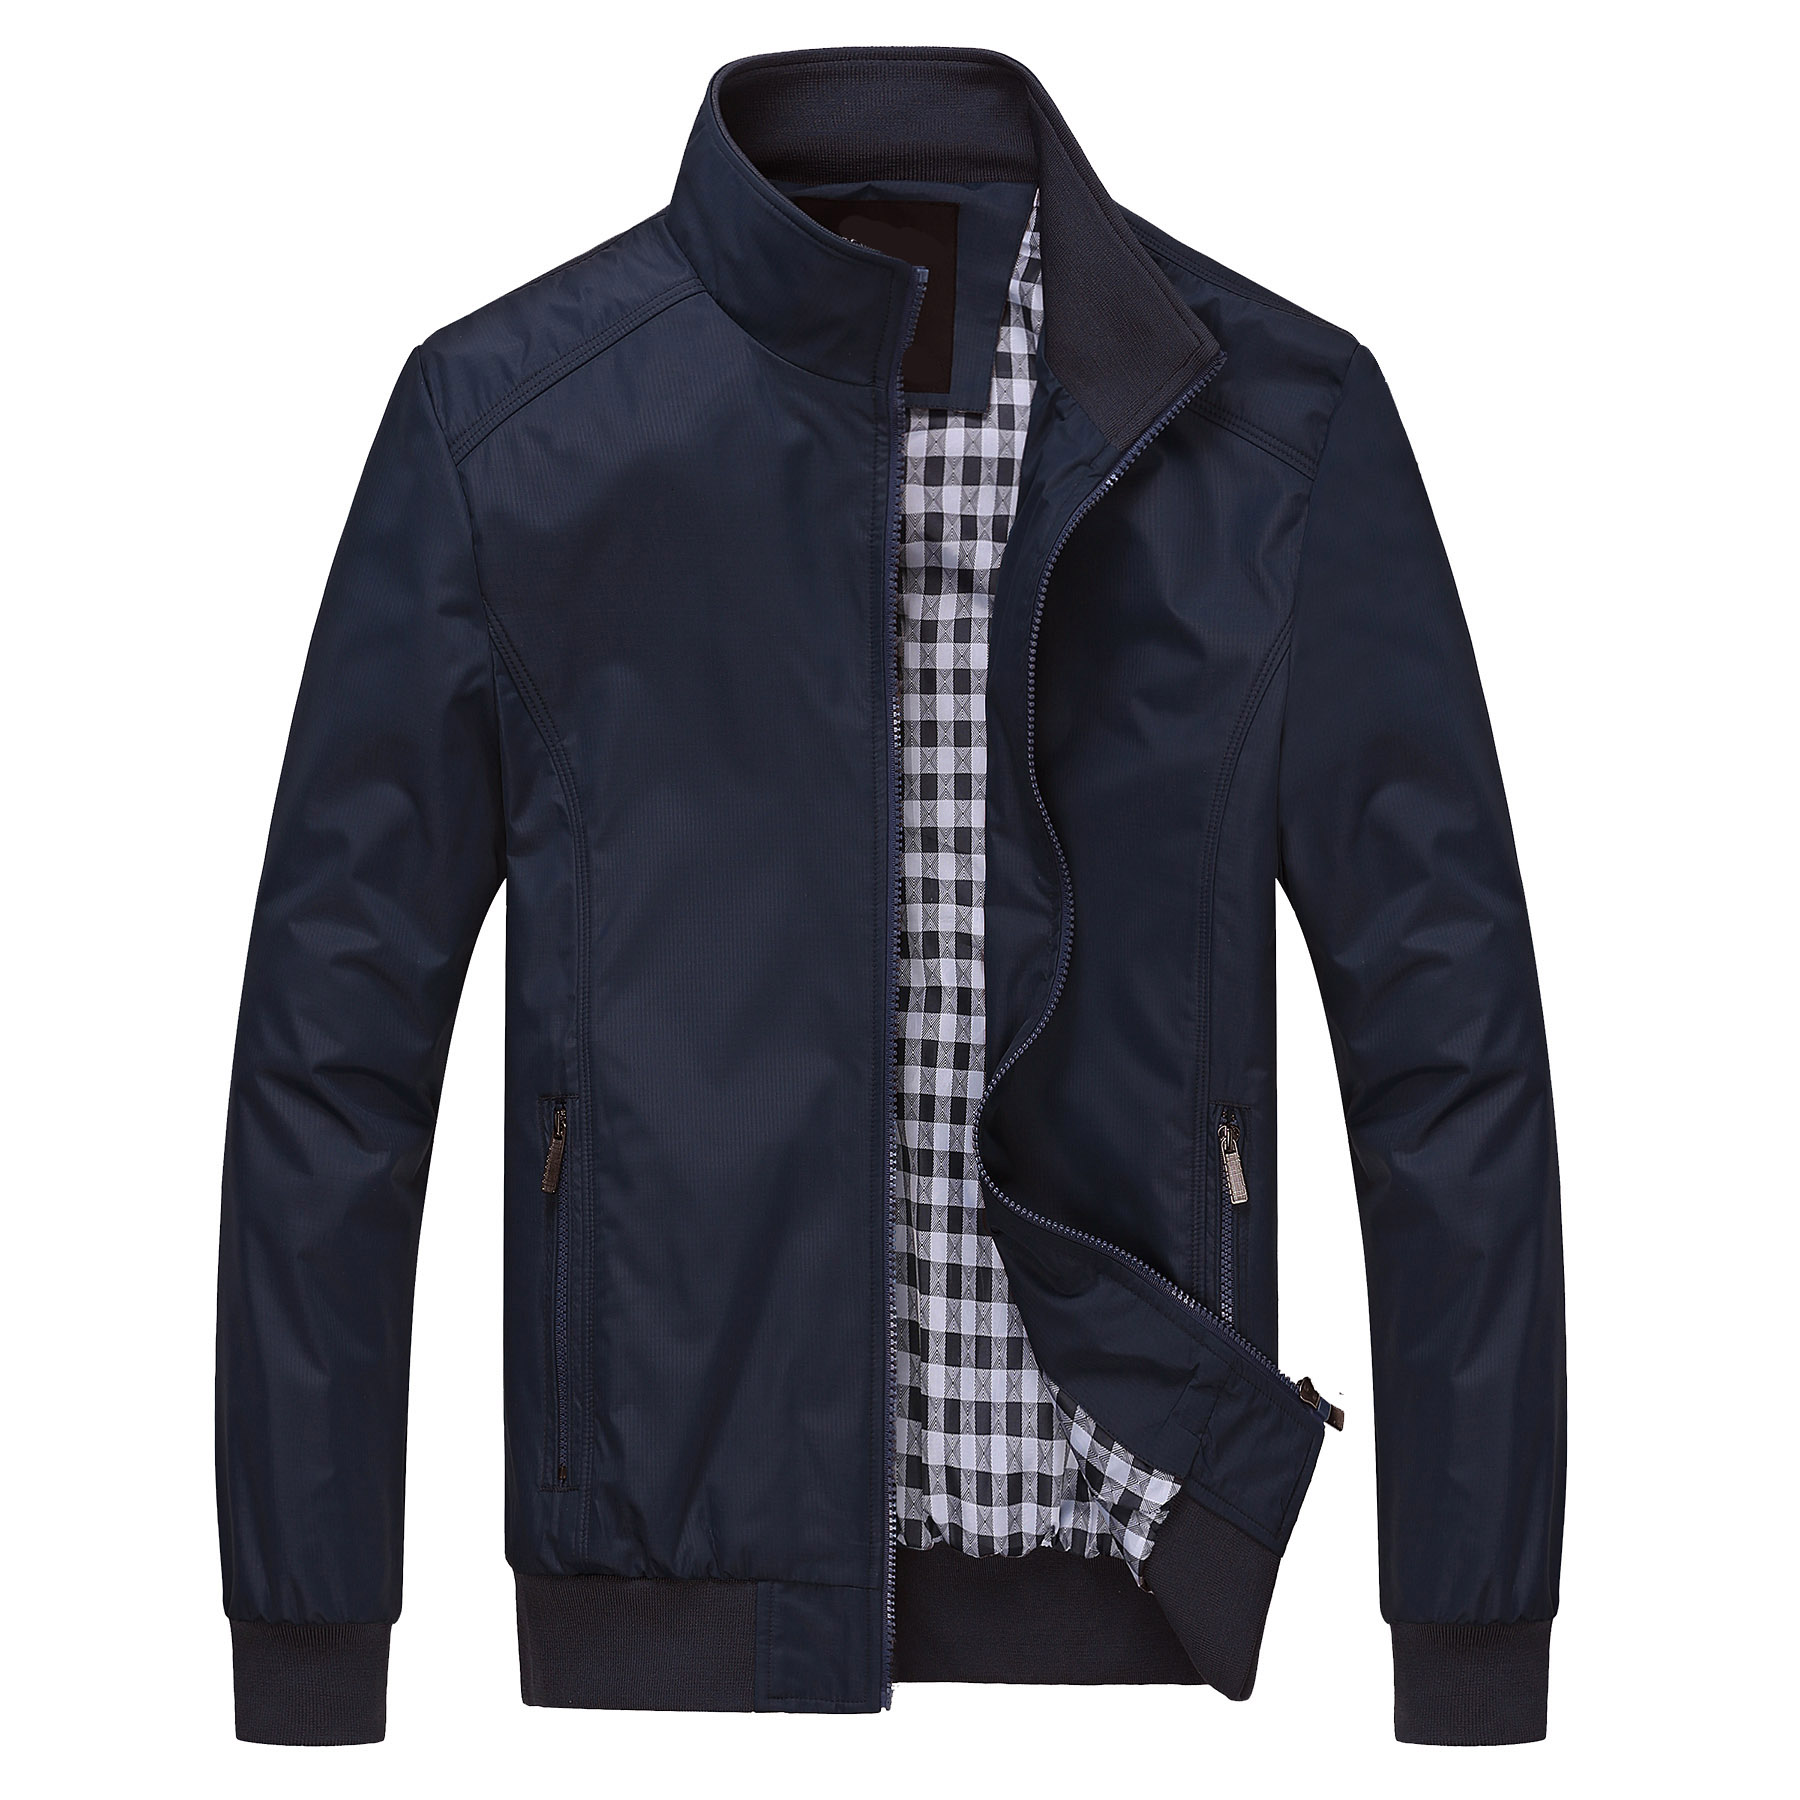 Blank hot sale best quality blue long sleeve jacket mens with zipper from China, As picture or customized make